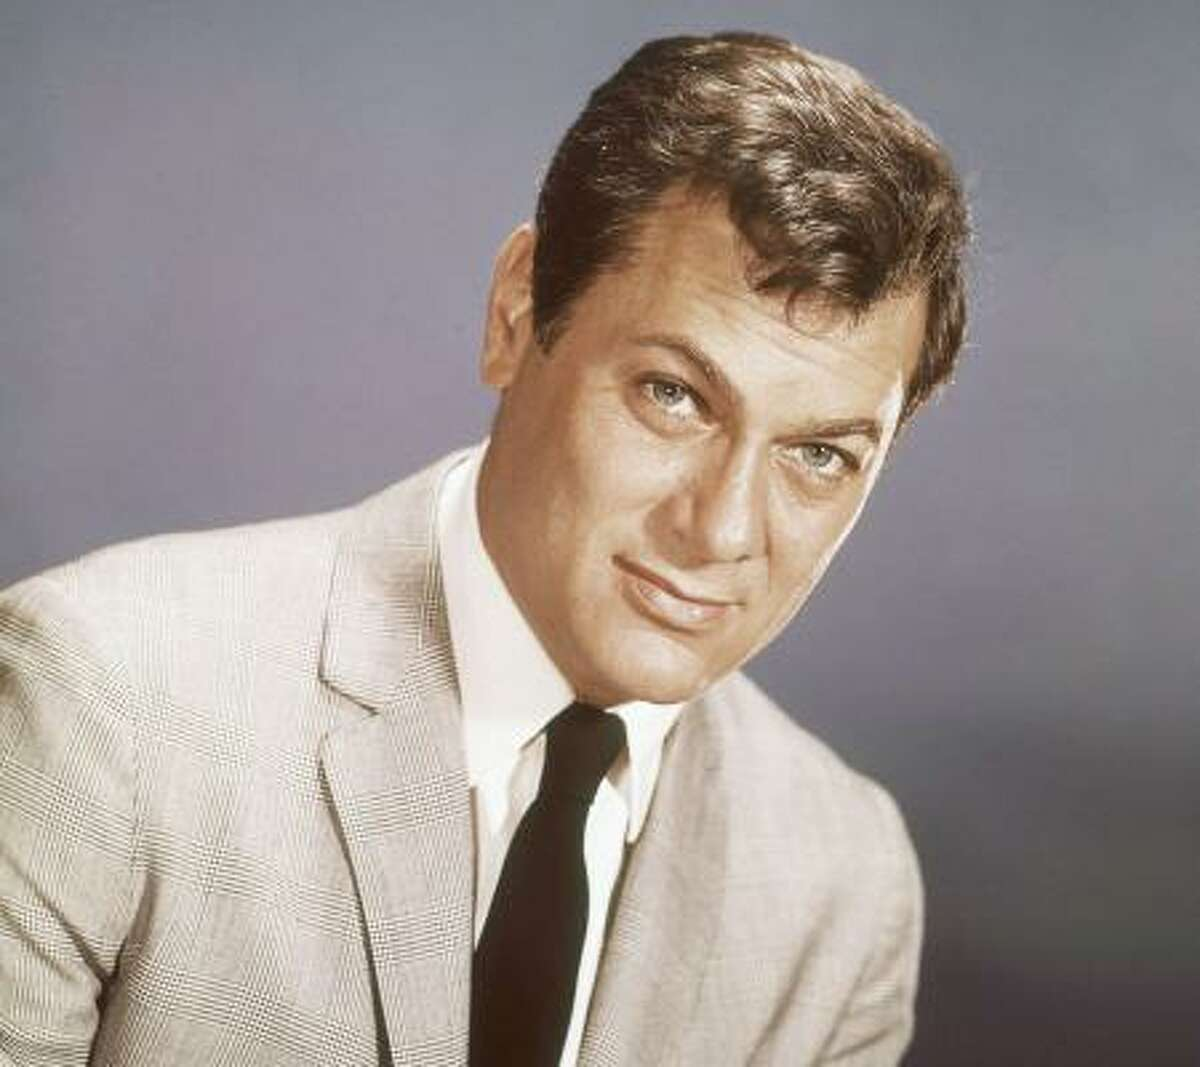 Actor Tony Curtis in 1965. He died Sept. 29, 2010, at his Las Vegas-area home of a cardiac arrest at age 85, according to the Clark County, Nevada, coroner.